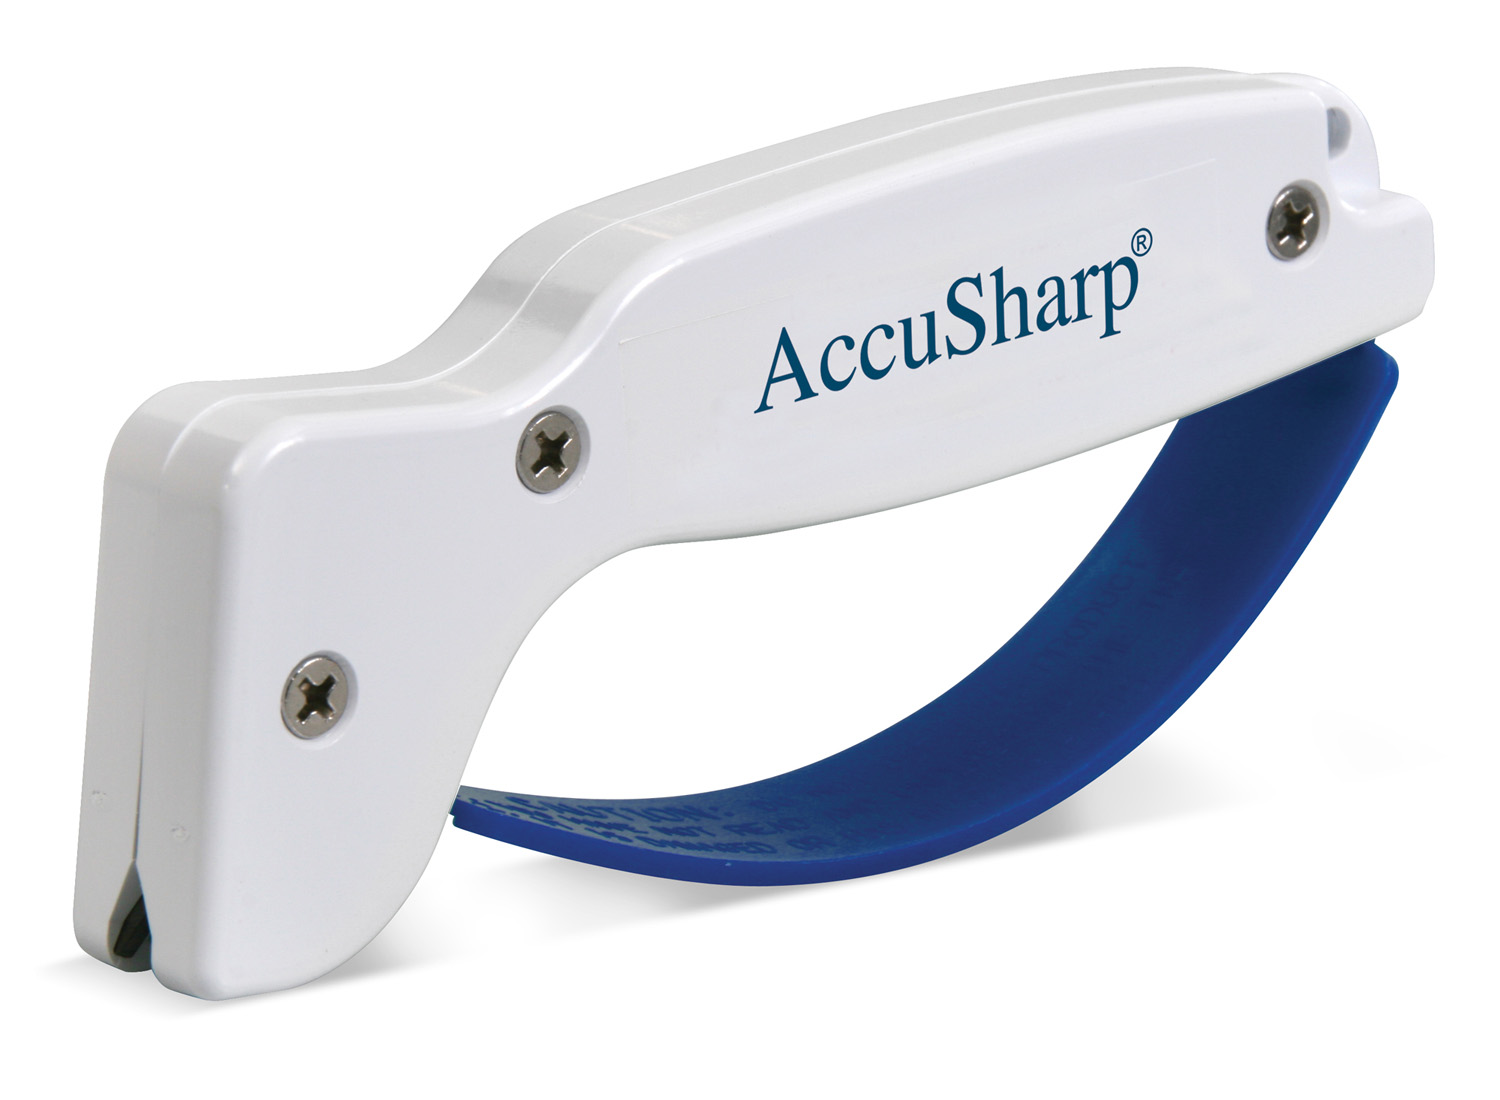 AccuSharp Knivslip